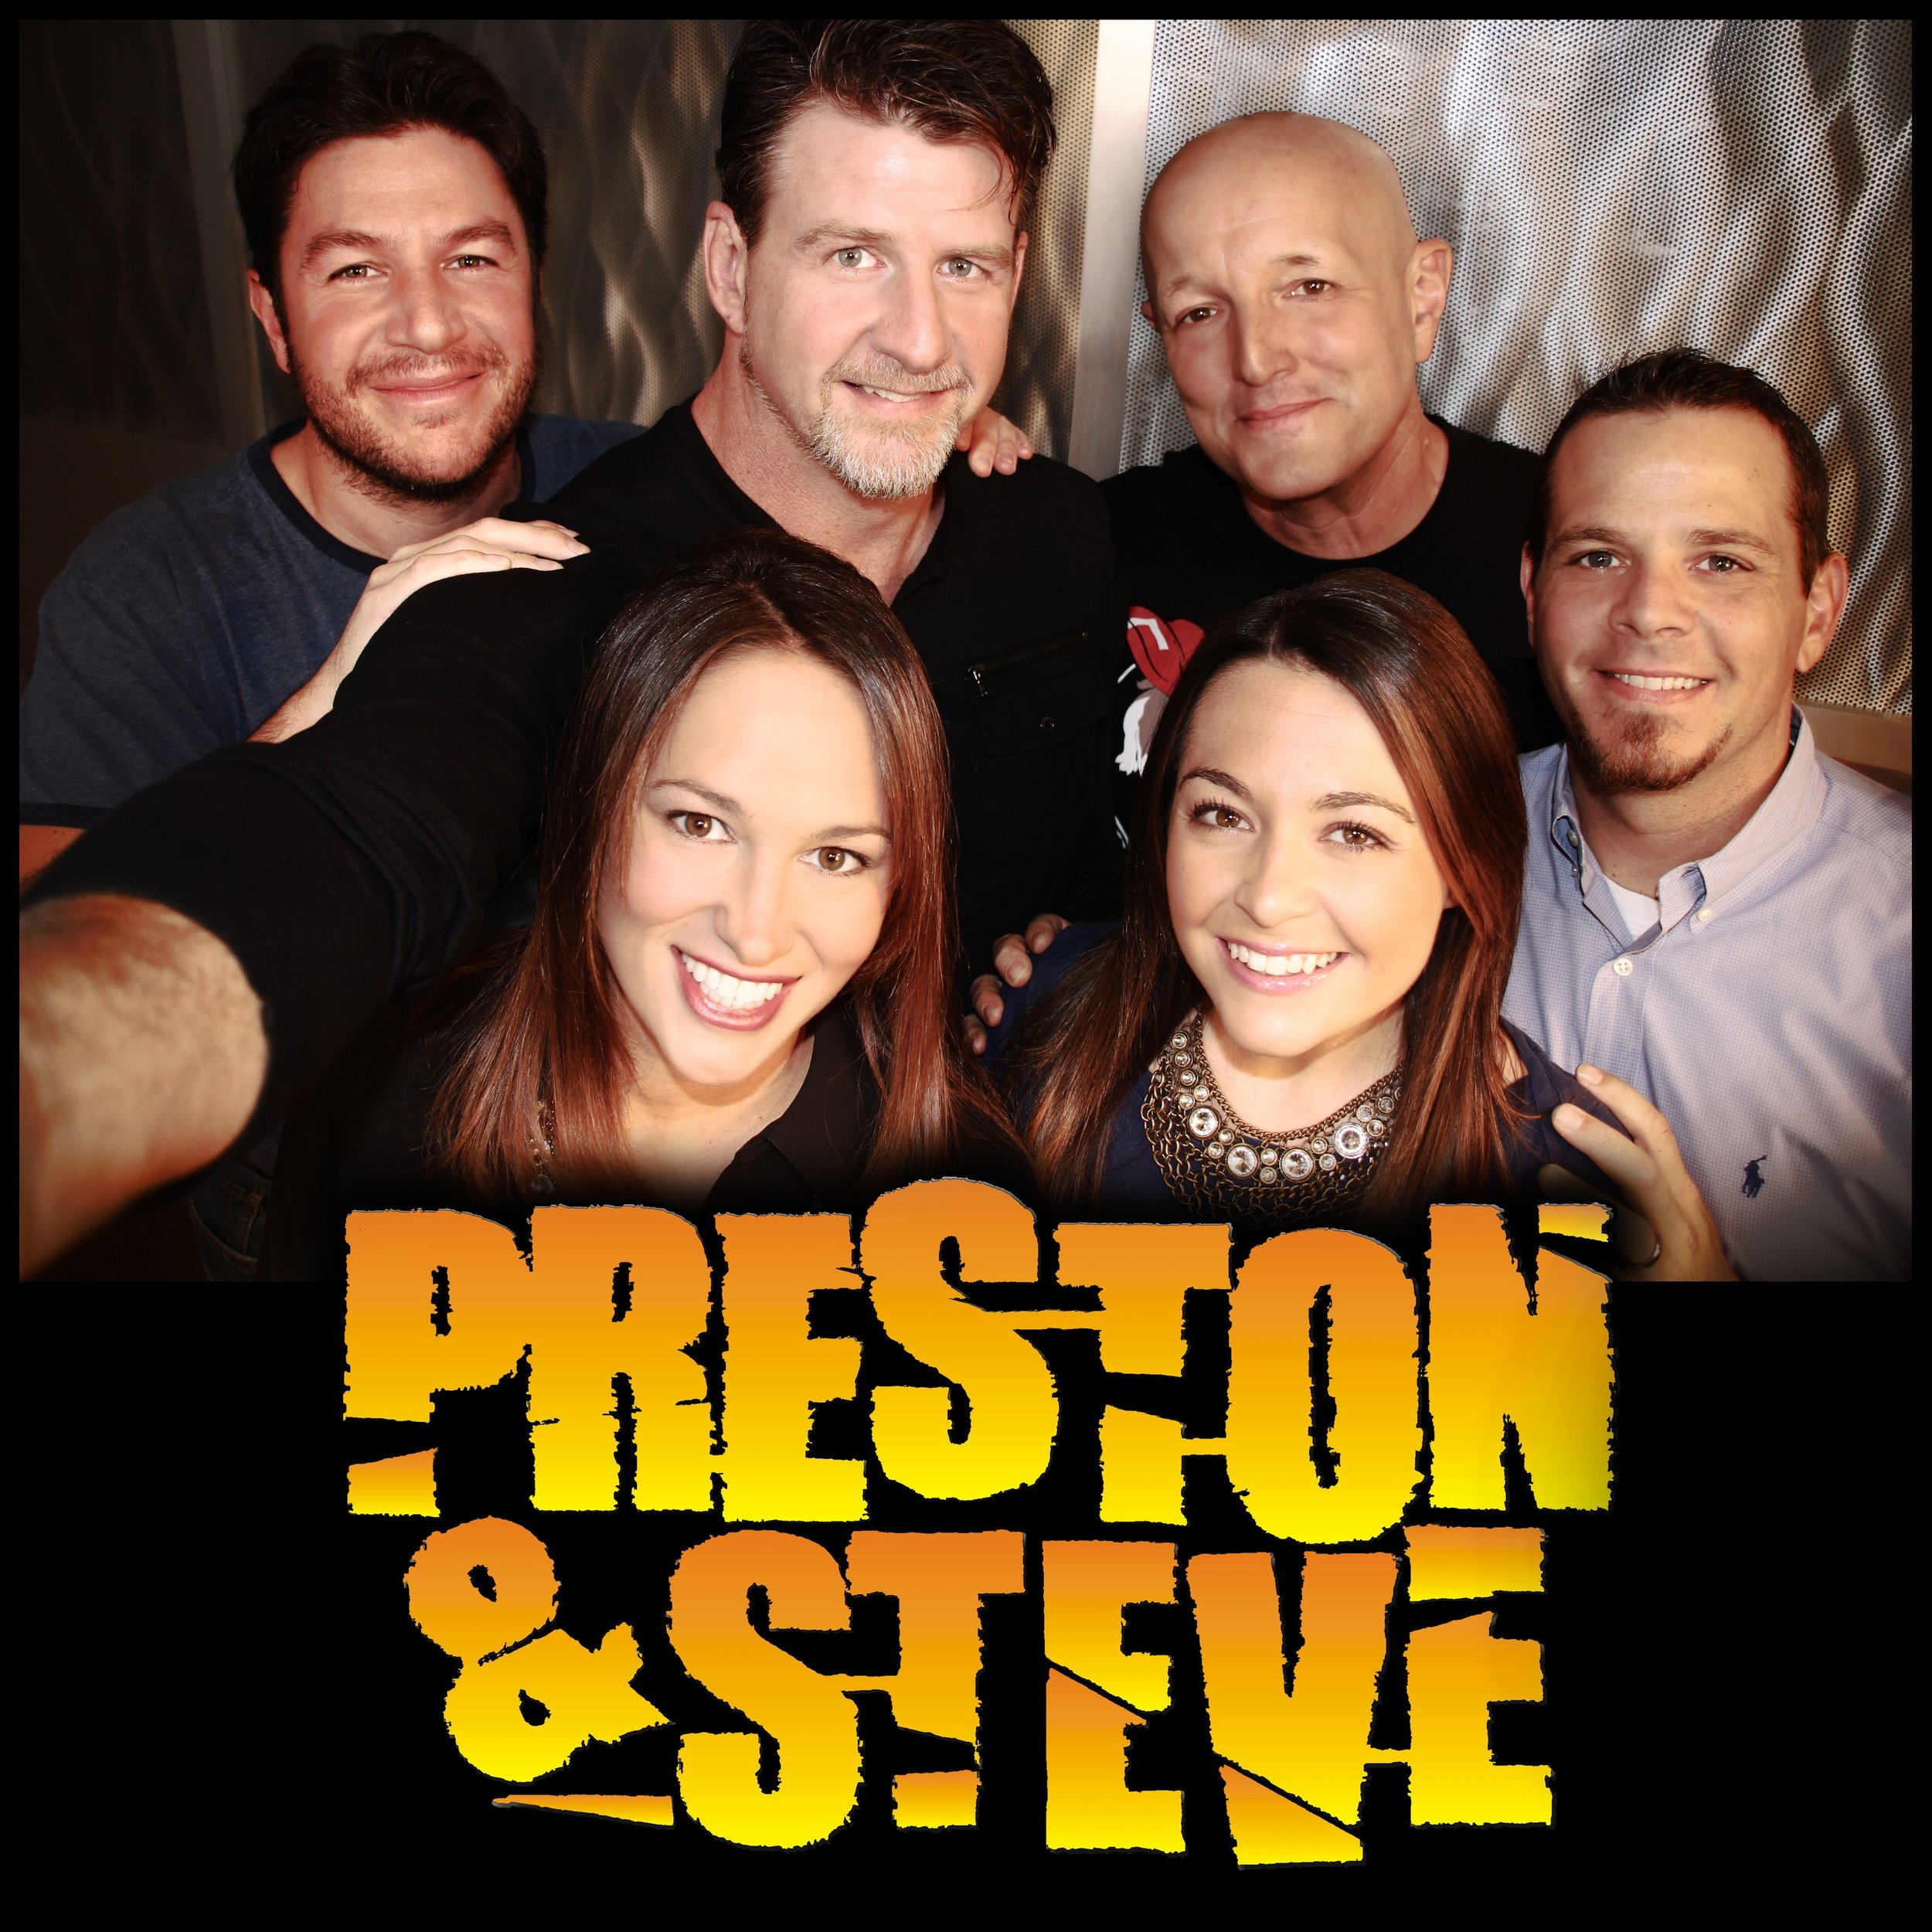 Preston & Steve - I grew up listening to the Preston and Steve radio show in the Philly area. They are funny, down-to-earth, and entertaining. This show helps me stay connected to where I grew up, and it helps me relax and chuckle.